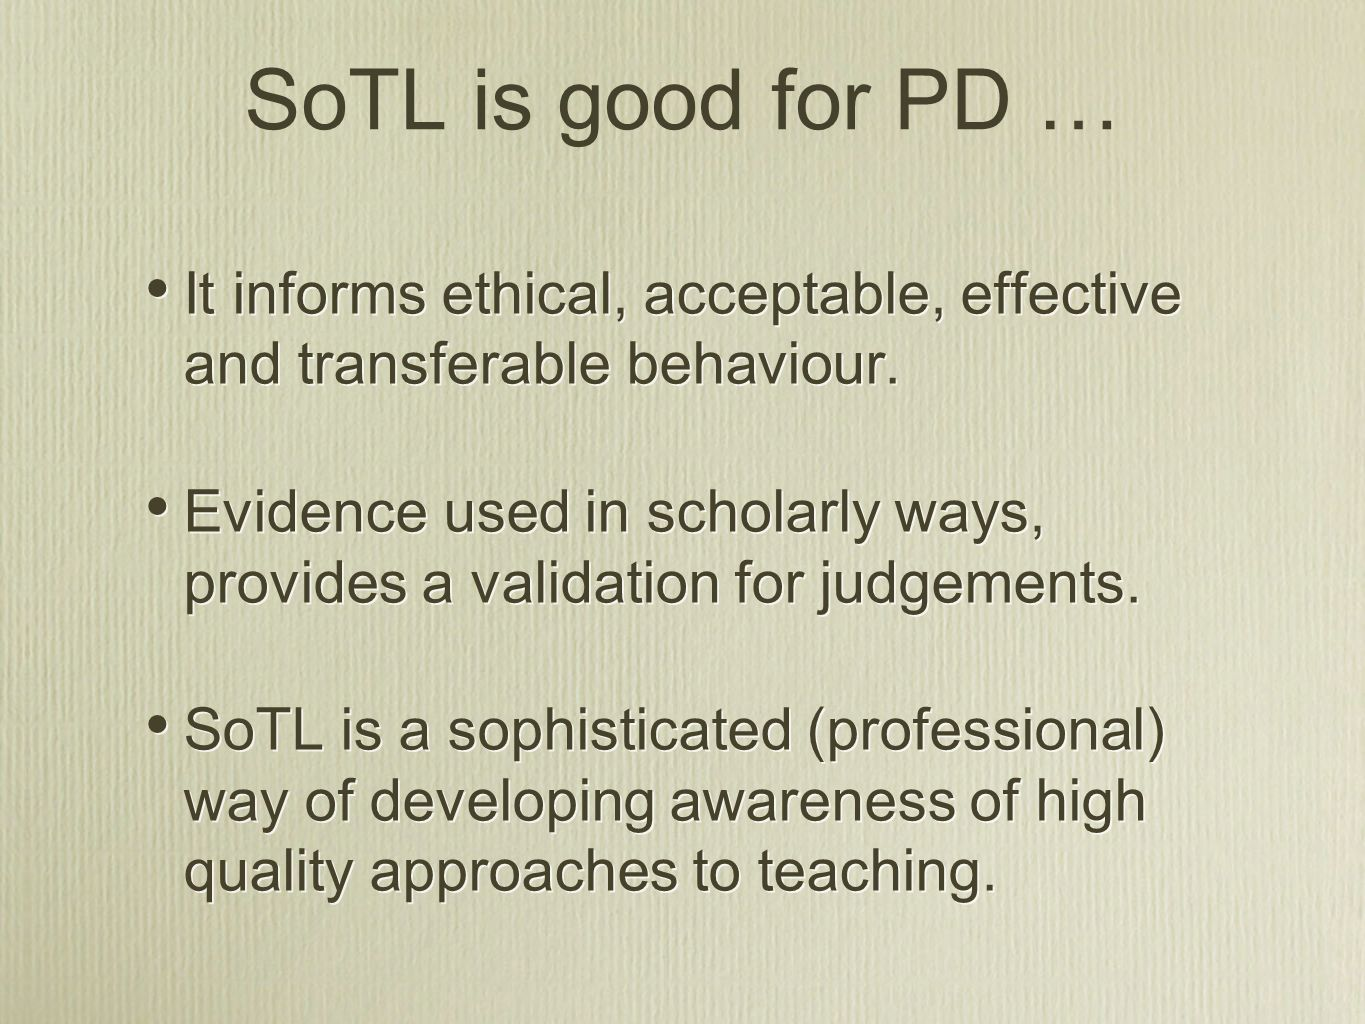 SoTL is good for PD … It informs ethical, acceptable, effective and transferable behaviour.